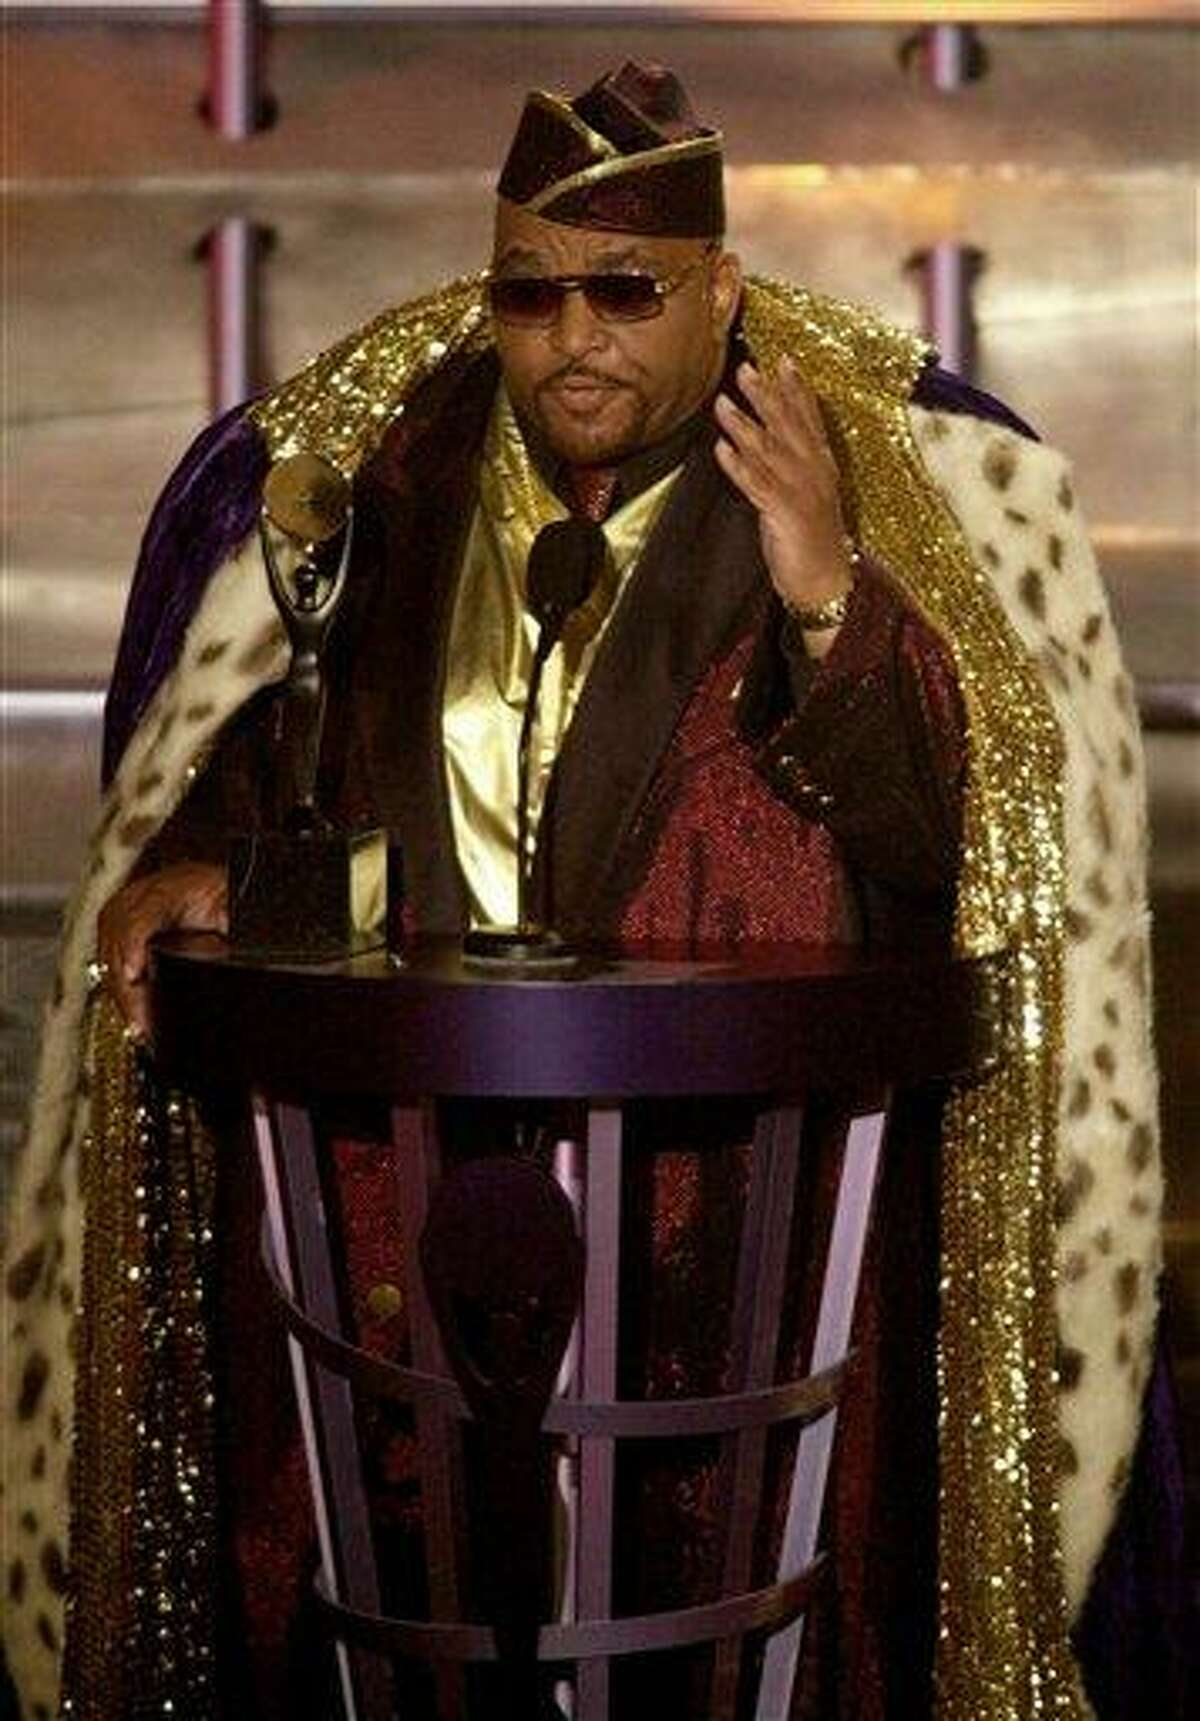 Solomon Burke, one of the pioneers of soul music, gestures to the audience after being inducted into the Rock and Roll Hall of Fame in this March 19, 2001 file photo taken in New York. Burke has died at Amsterdam's Schiphol Airport. Airport police spokesman Robert van Kapel confirmed the death of the singer Sunday Oct. 10, 2010. He was 70. (AP Photo/Kathy Willens)